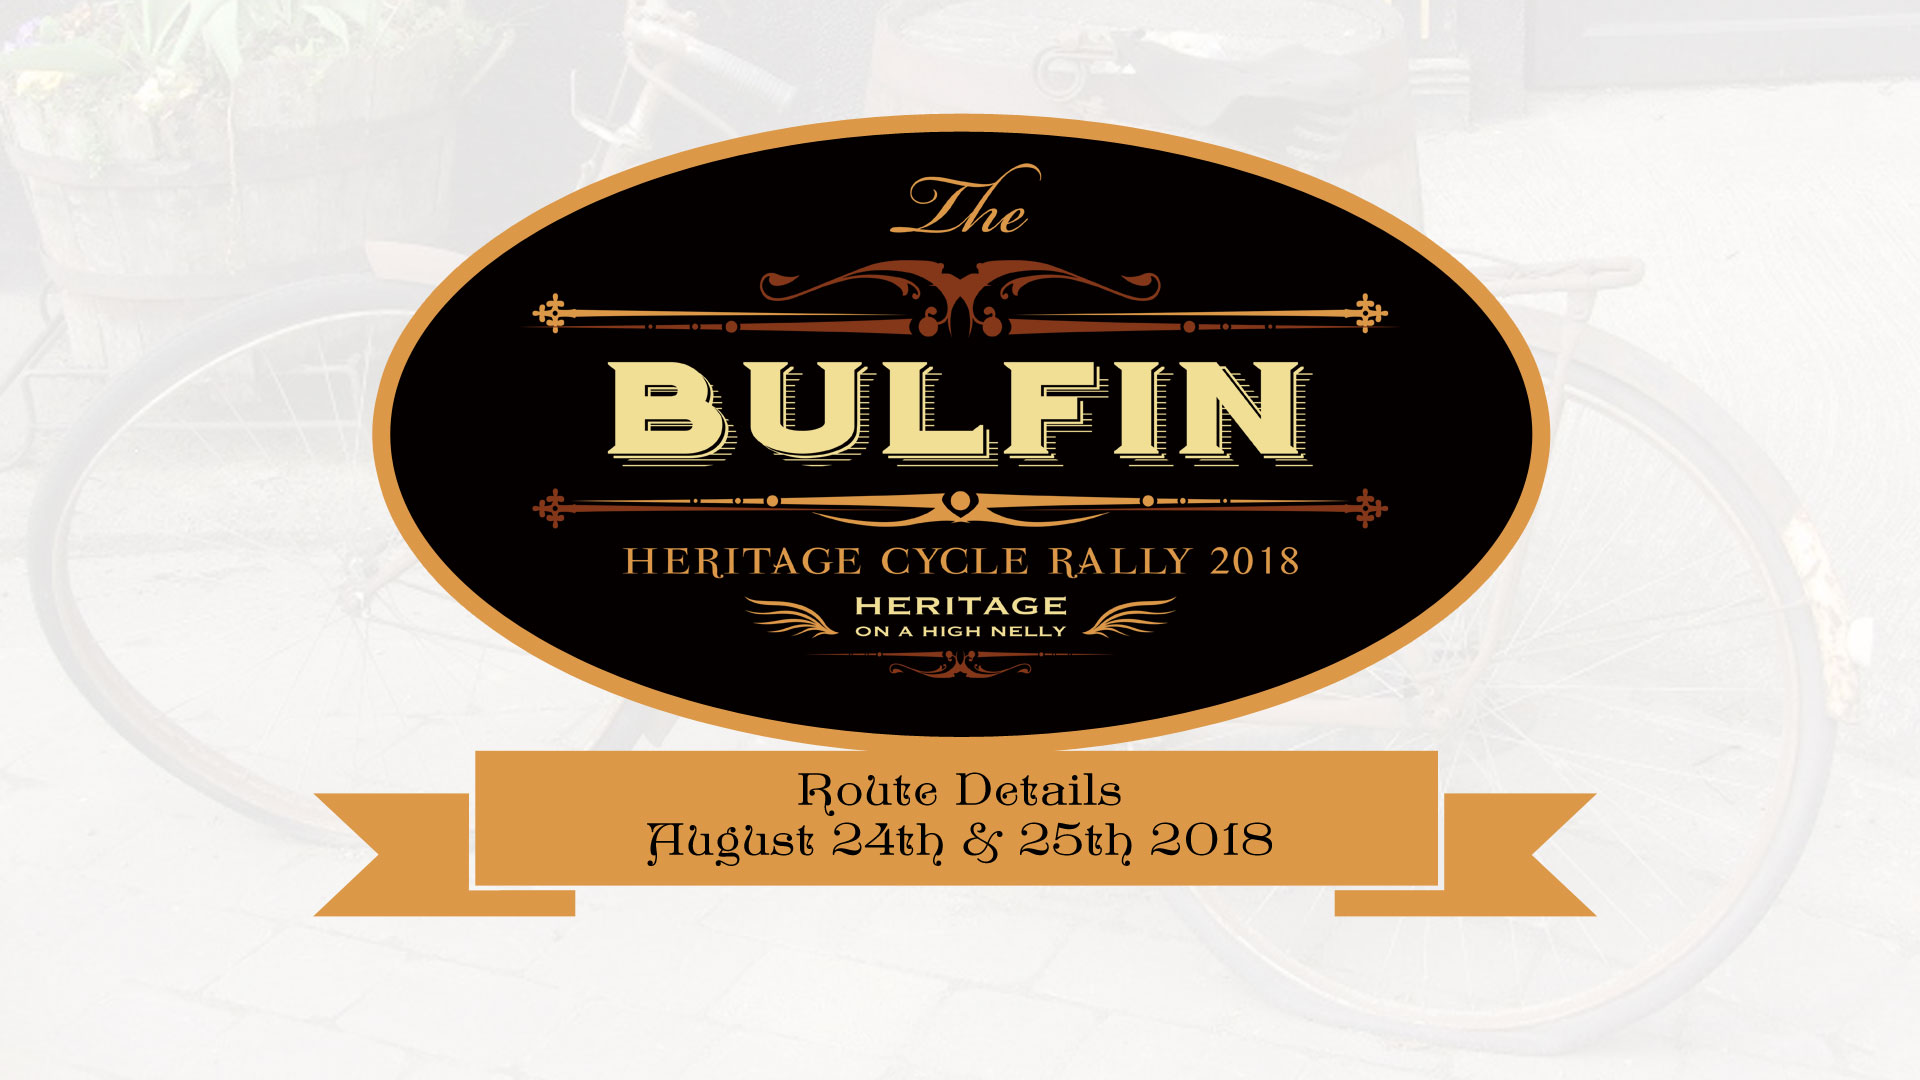 Day One of the Bulfin Heritage Cycle, following in the wheel rims of William Bulfin